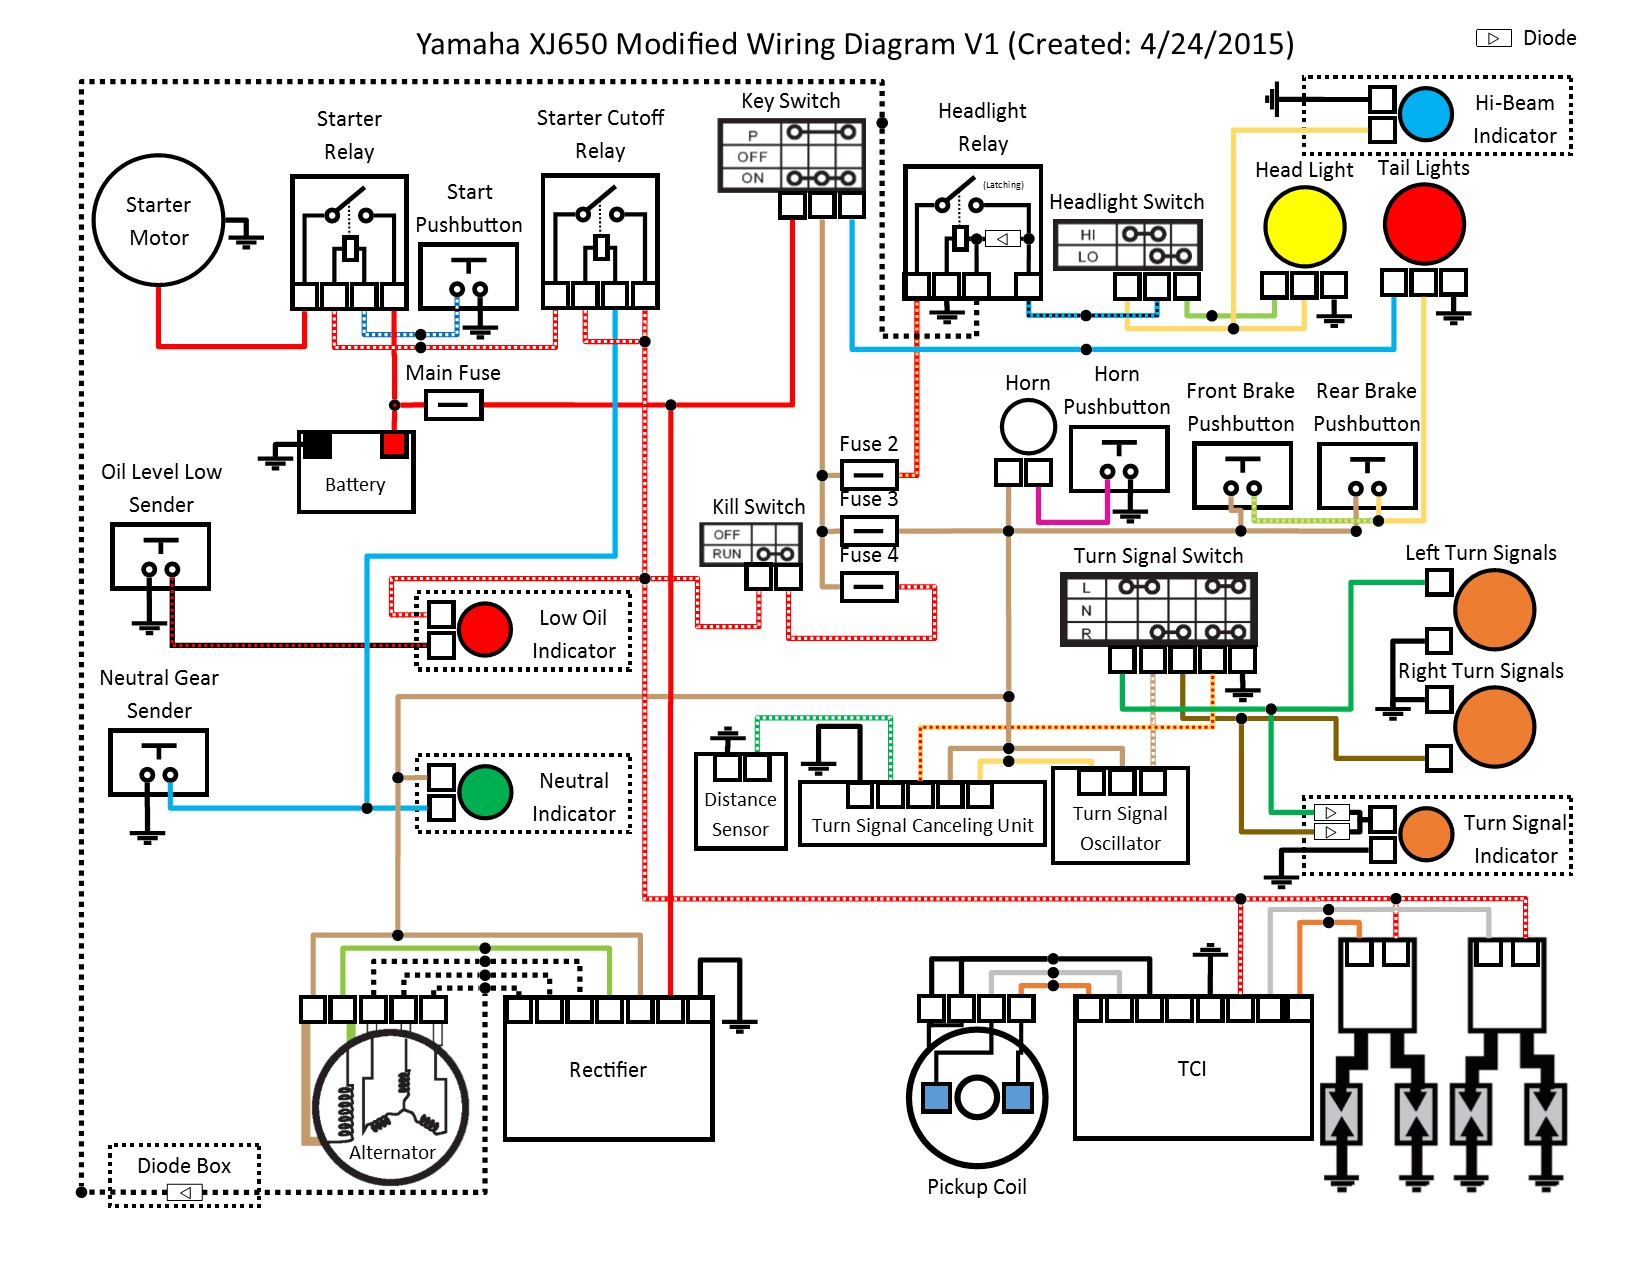 Electrical Wiring Diagram Of Motorcycle | Manual E-Books - Electrical Wiring Diagram